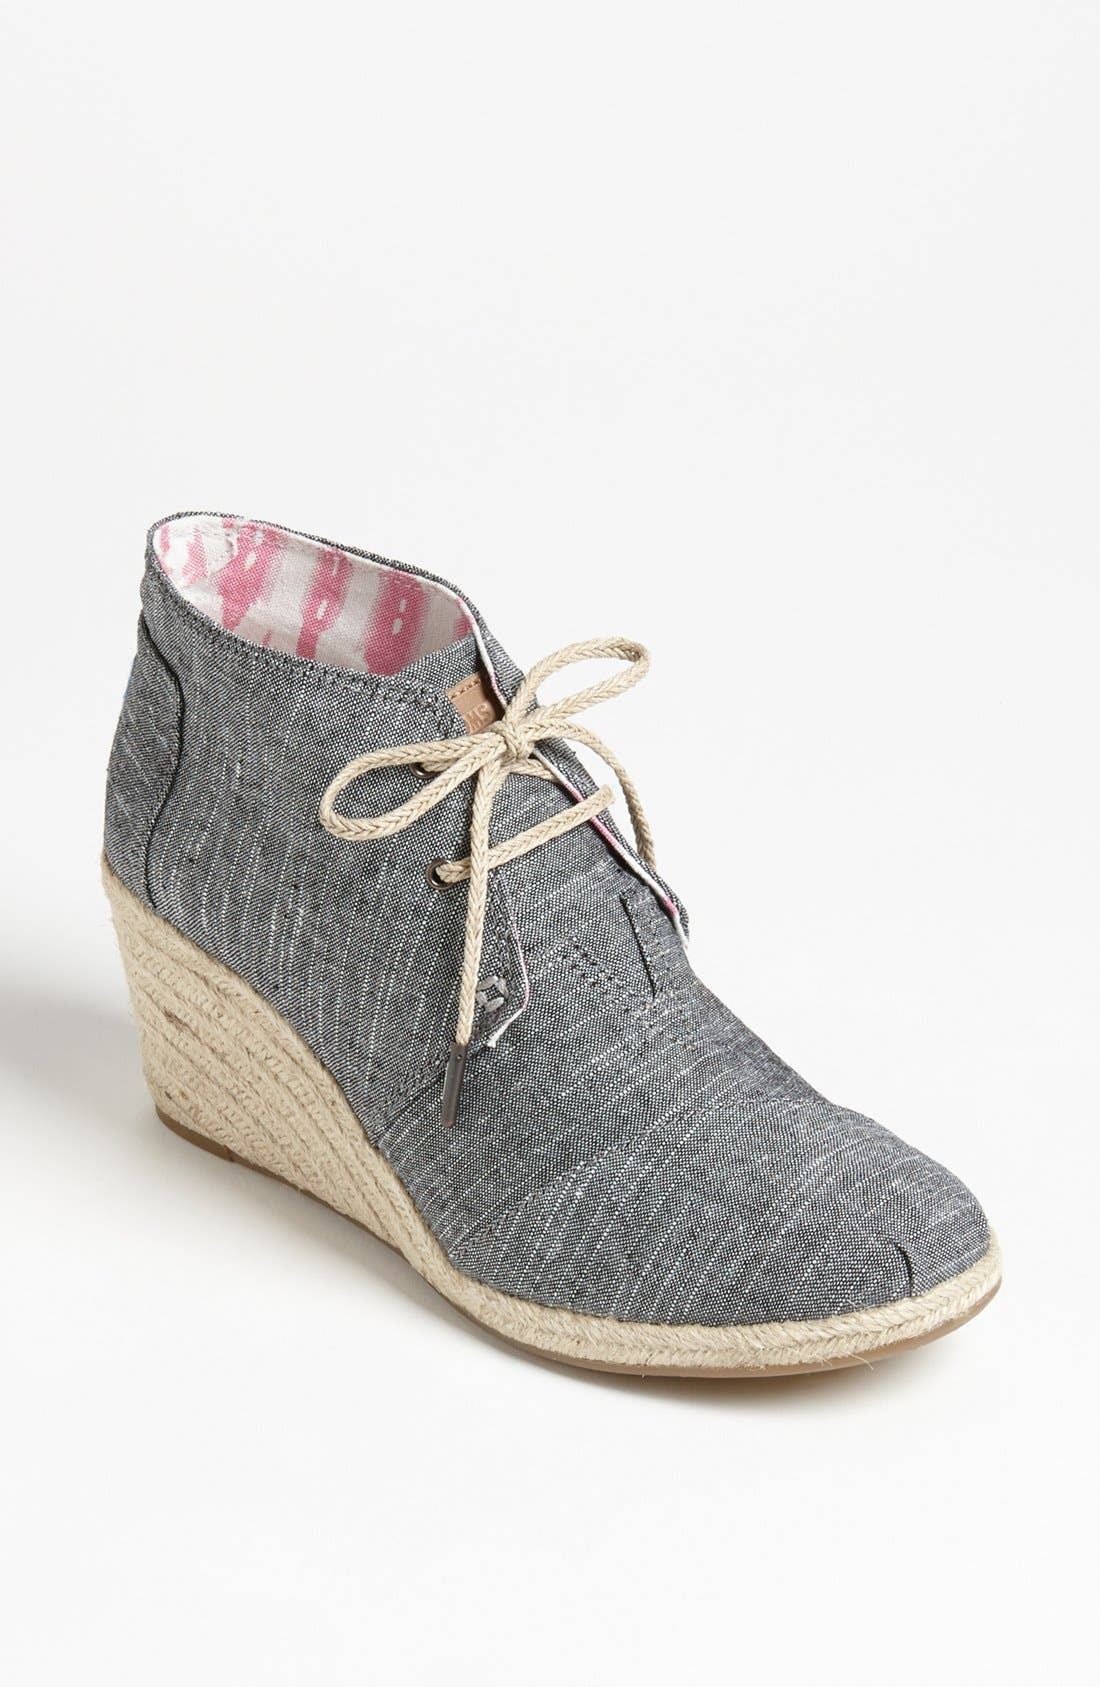 Main Image - TOMS 'Desert' Chambray Wedge Bootie